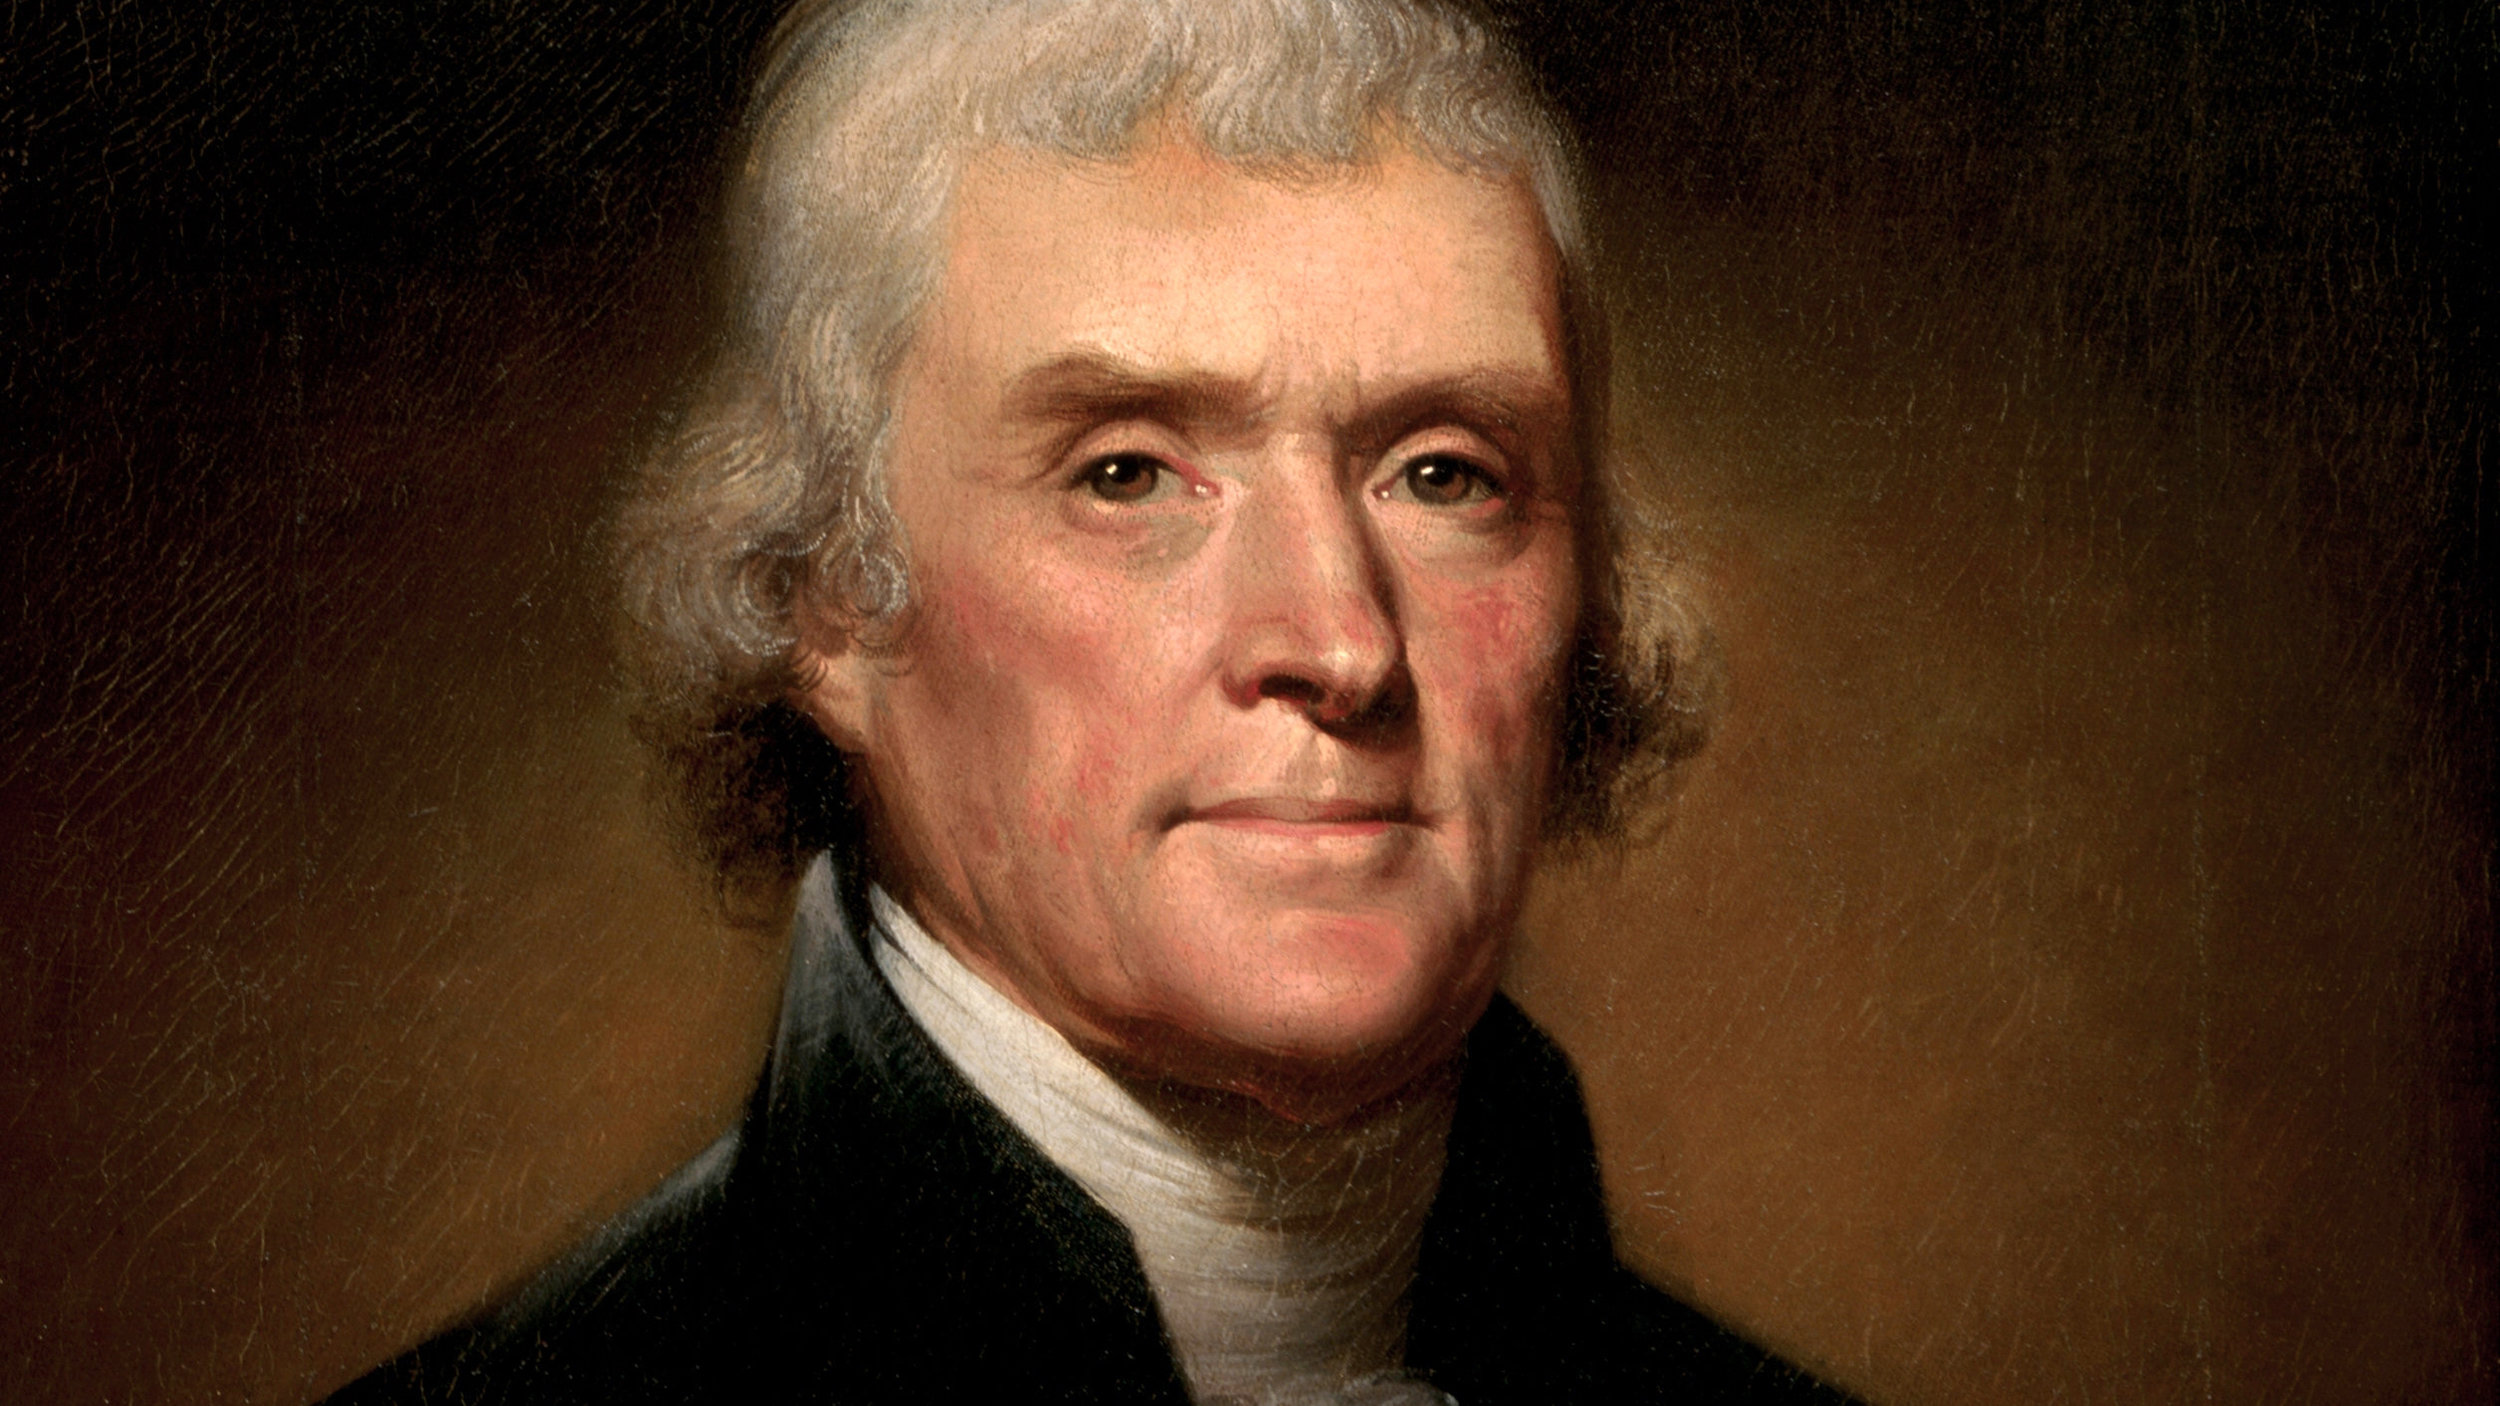 Have You Looked Around, Mr. Jefferson? - The Jefferson Watch